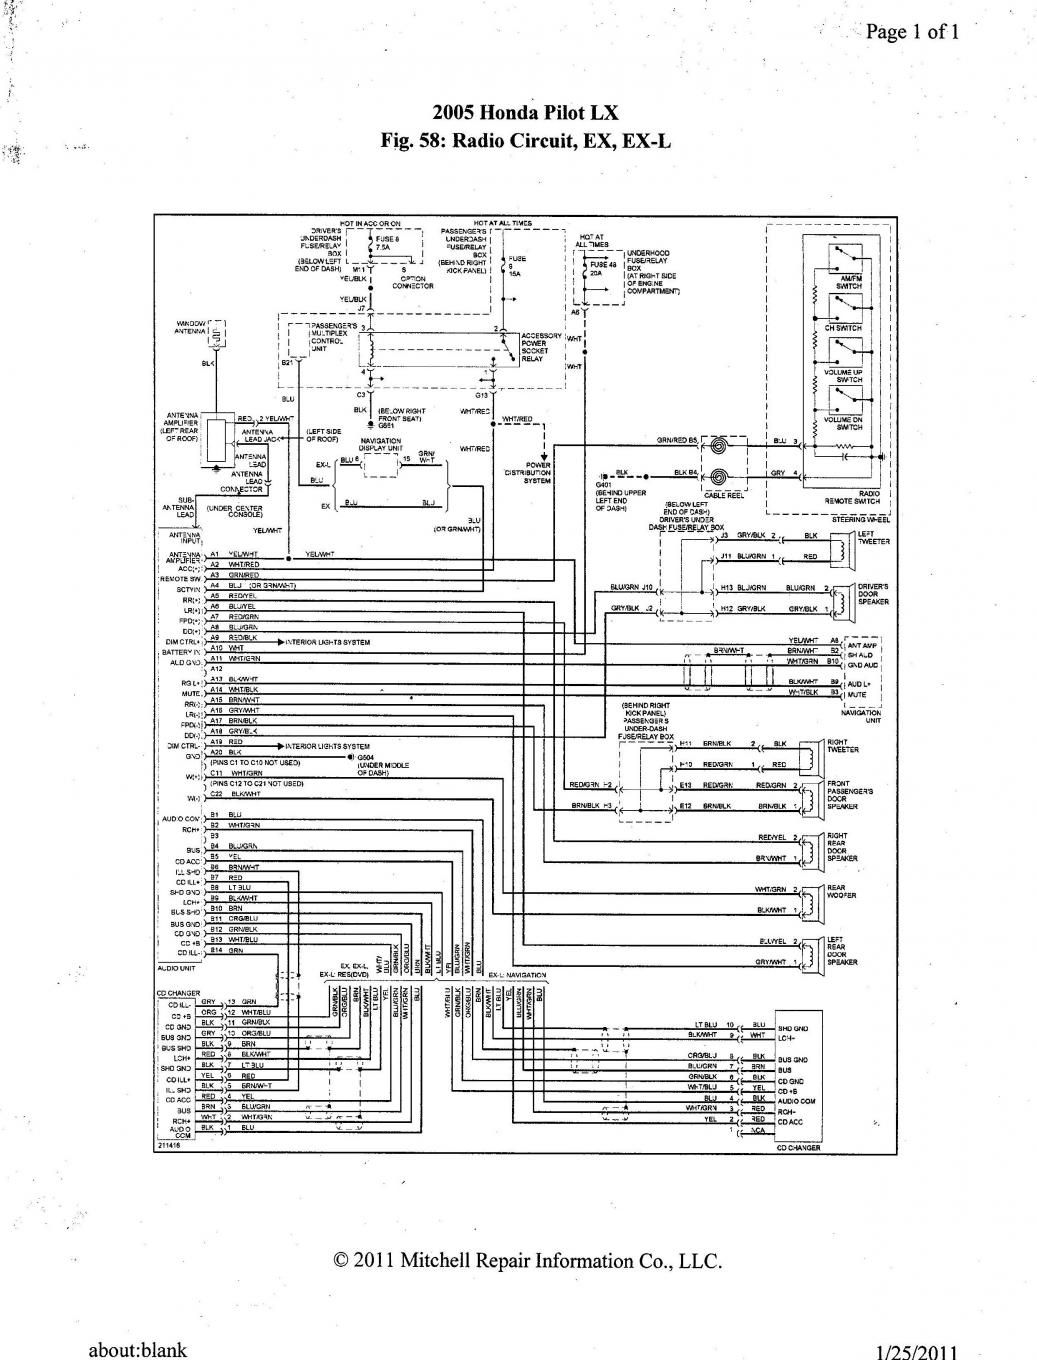 2005 Honda Pilot Ex L Radio Wiring Diagram In Nexus Smart Switch Wire